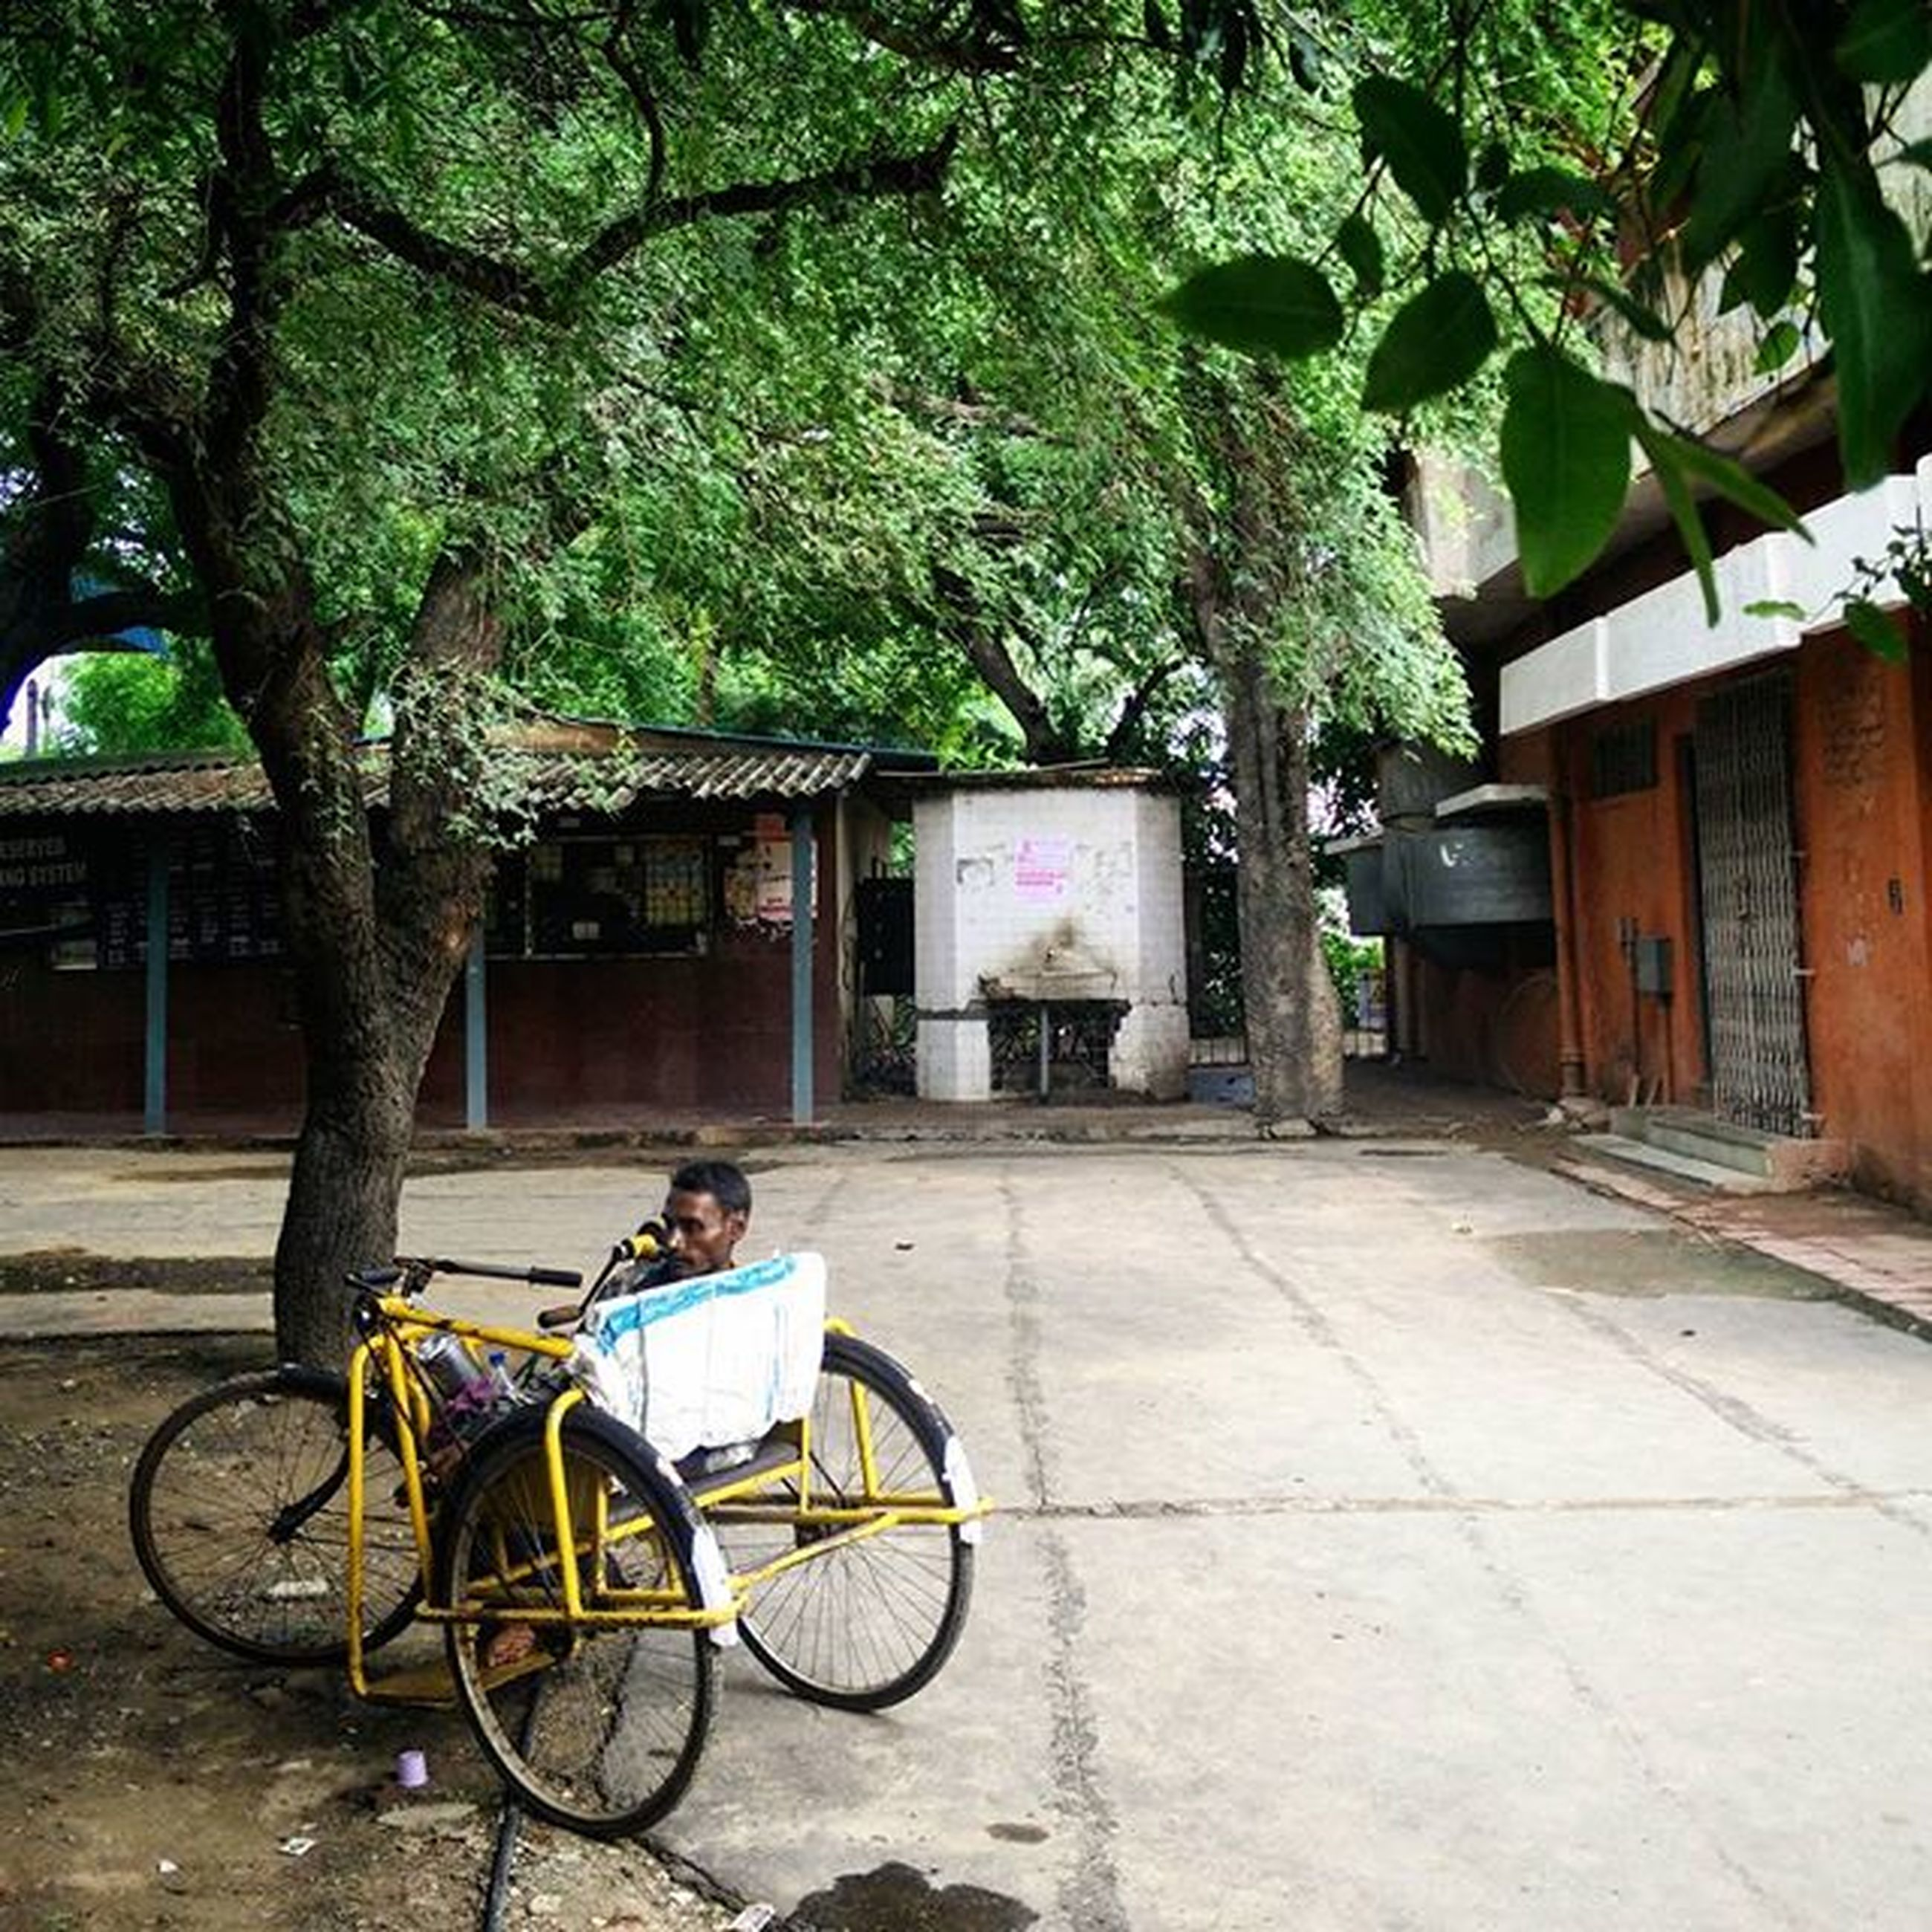 bicycle, transportation, mode of transport, land vehicle, parked, tree, stationary, parking, building exterior, architecture, built structure, street, house, sidewalk, footpath, day, cobblestone, outdoors, absence, growth